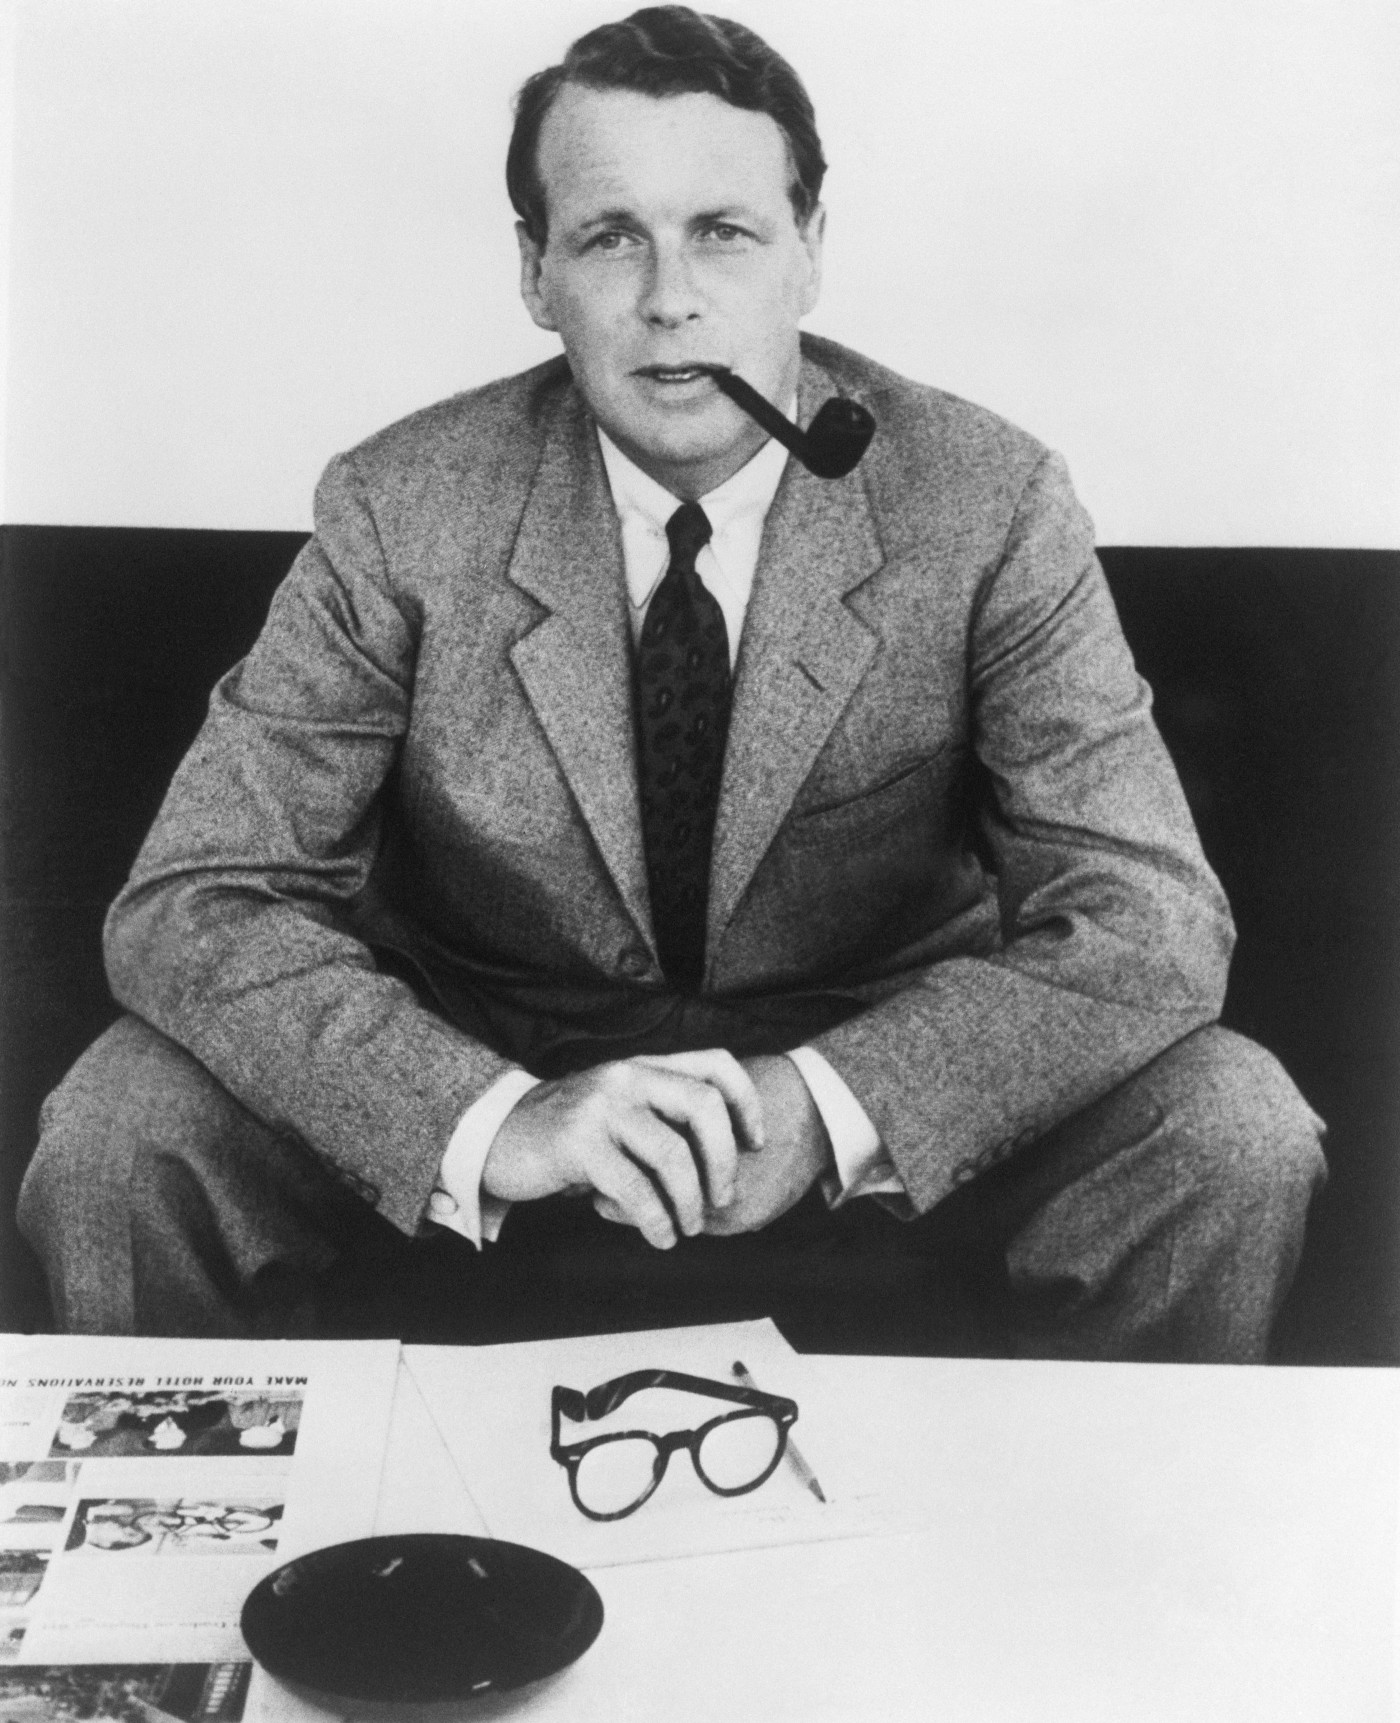 David Ogilvy, founder and president of the advertising agency Ogilvy & Mather.